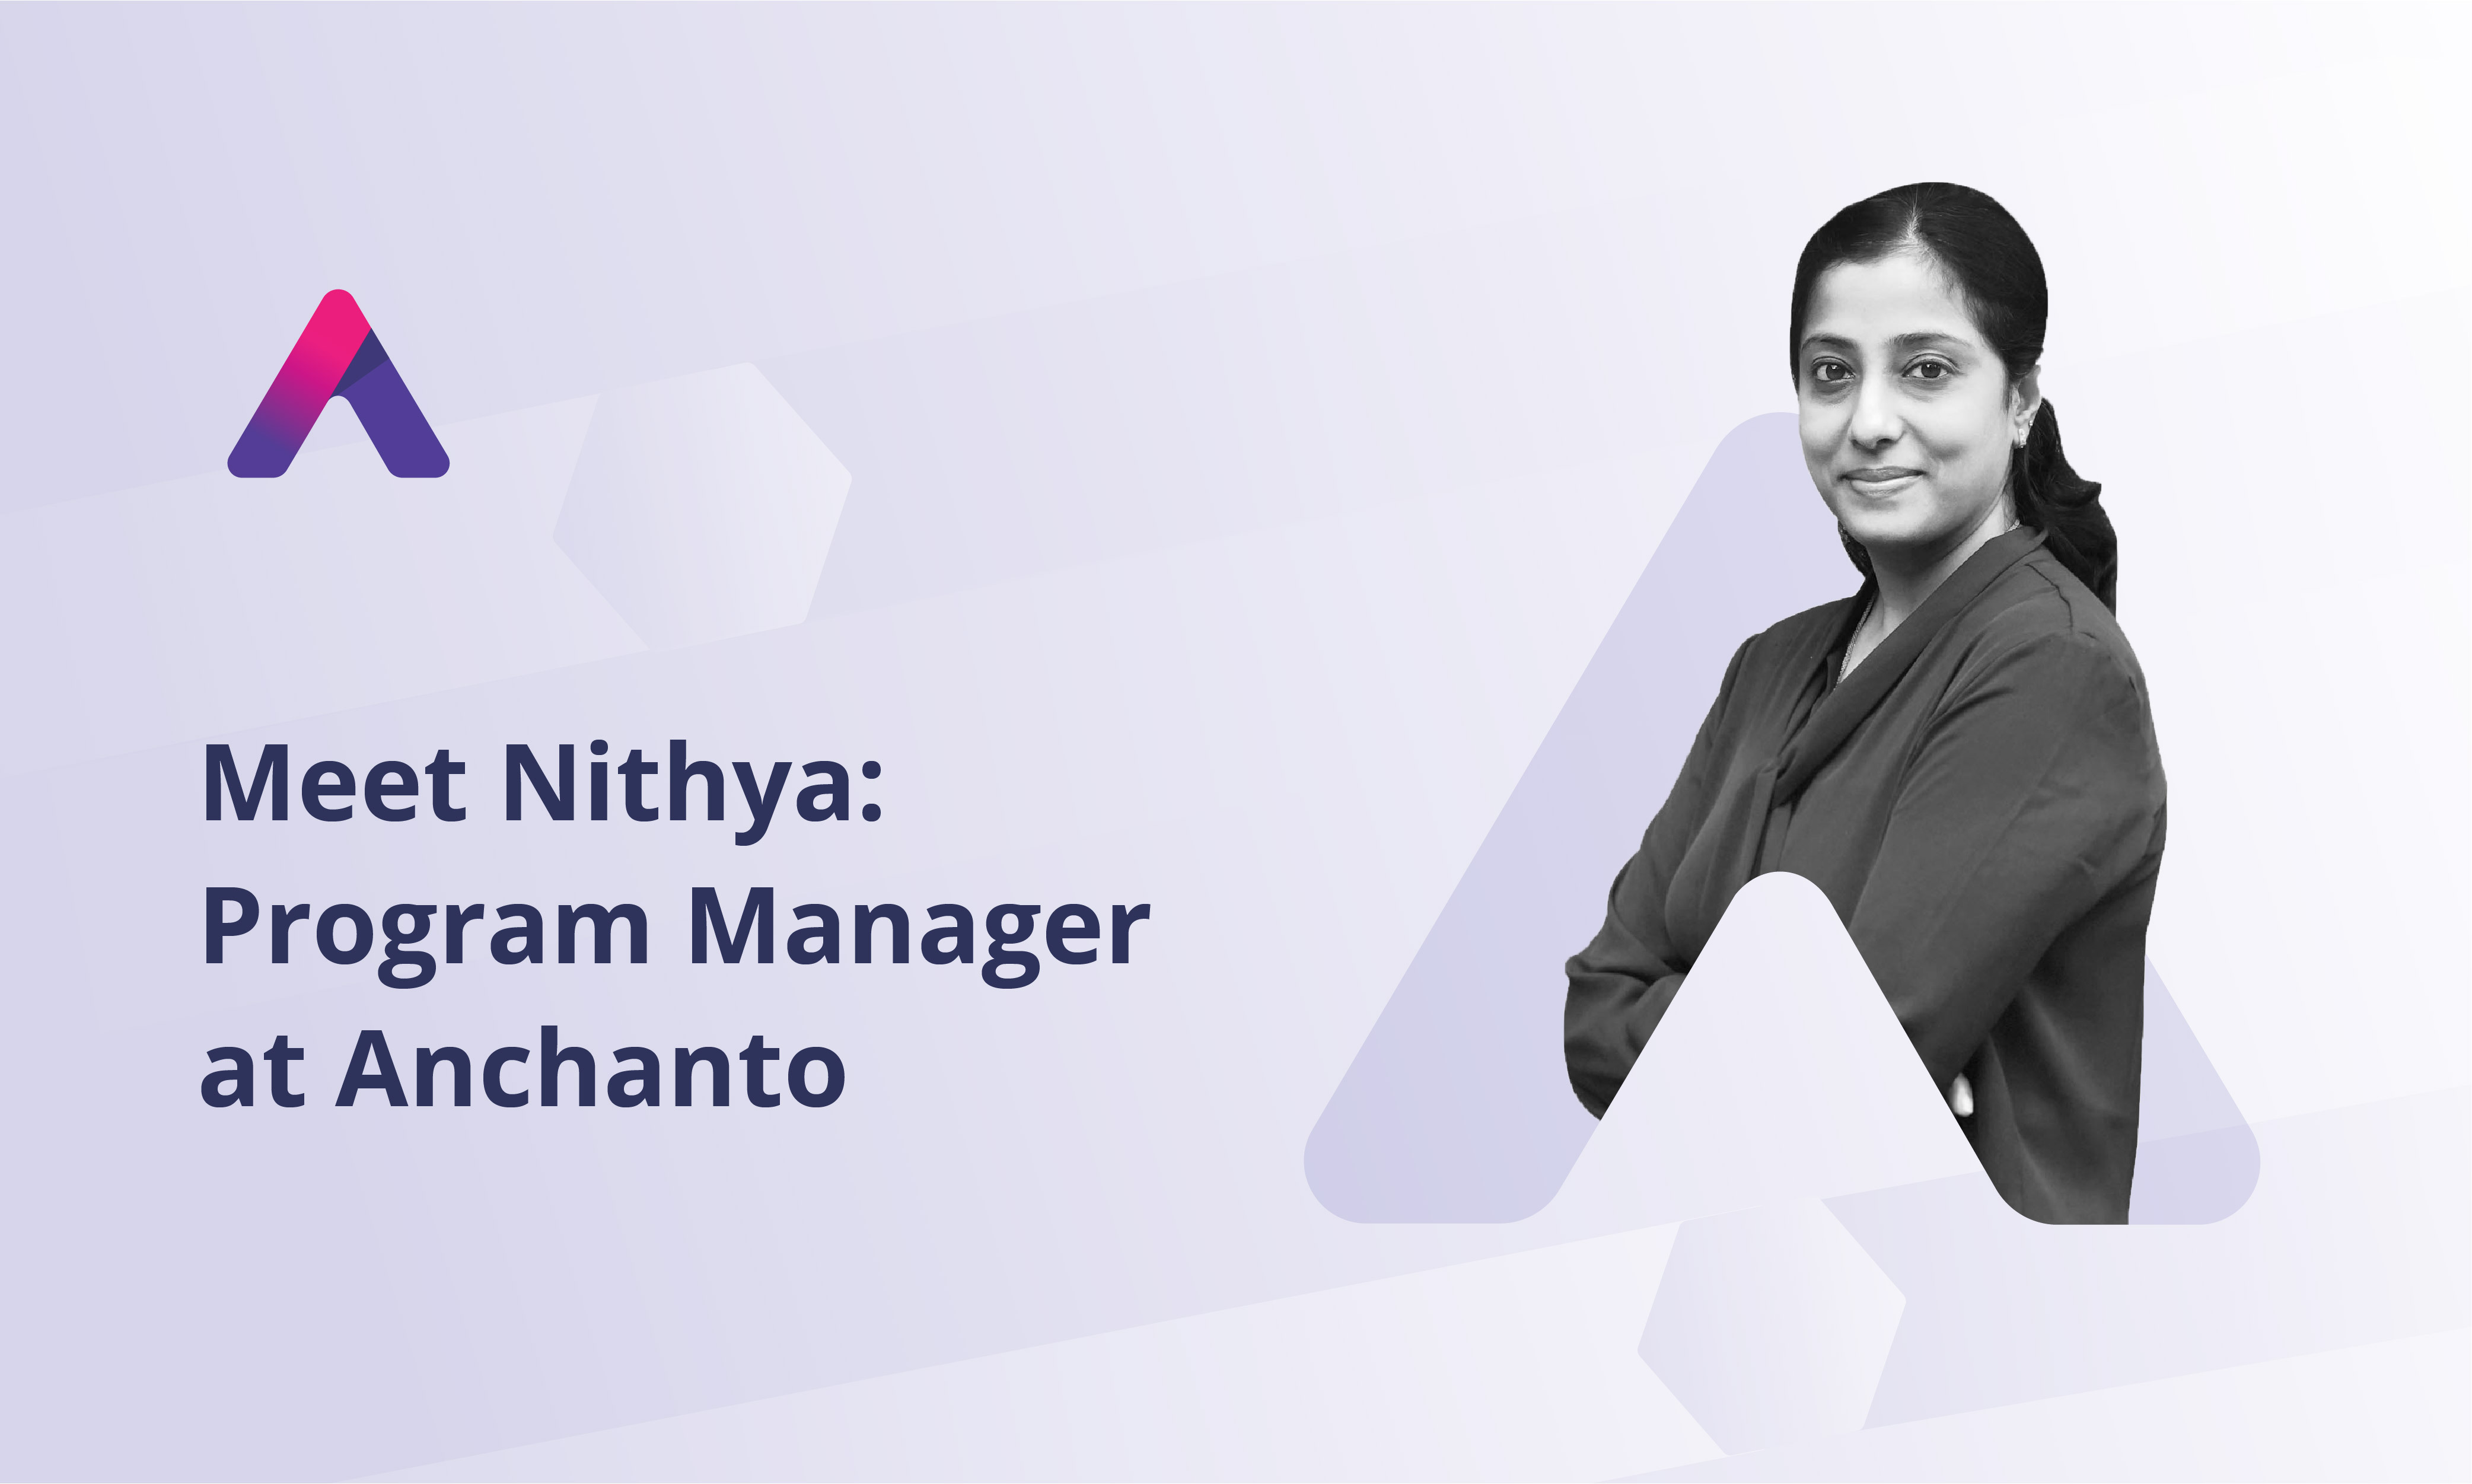 Solving eCommerce challenges at Anchanto